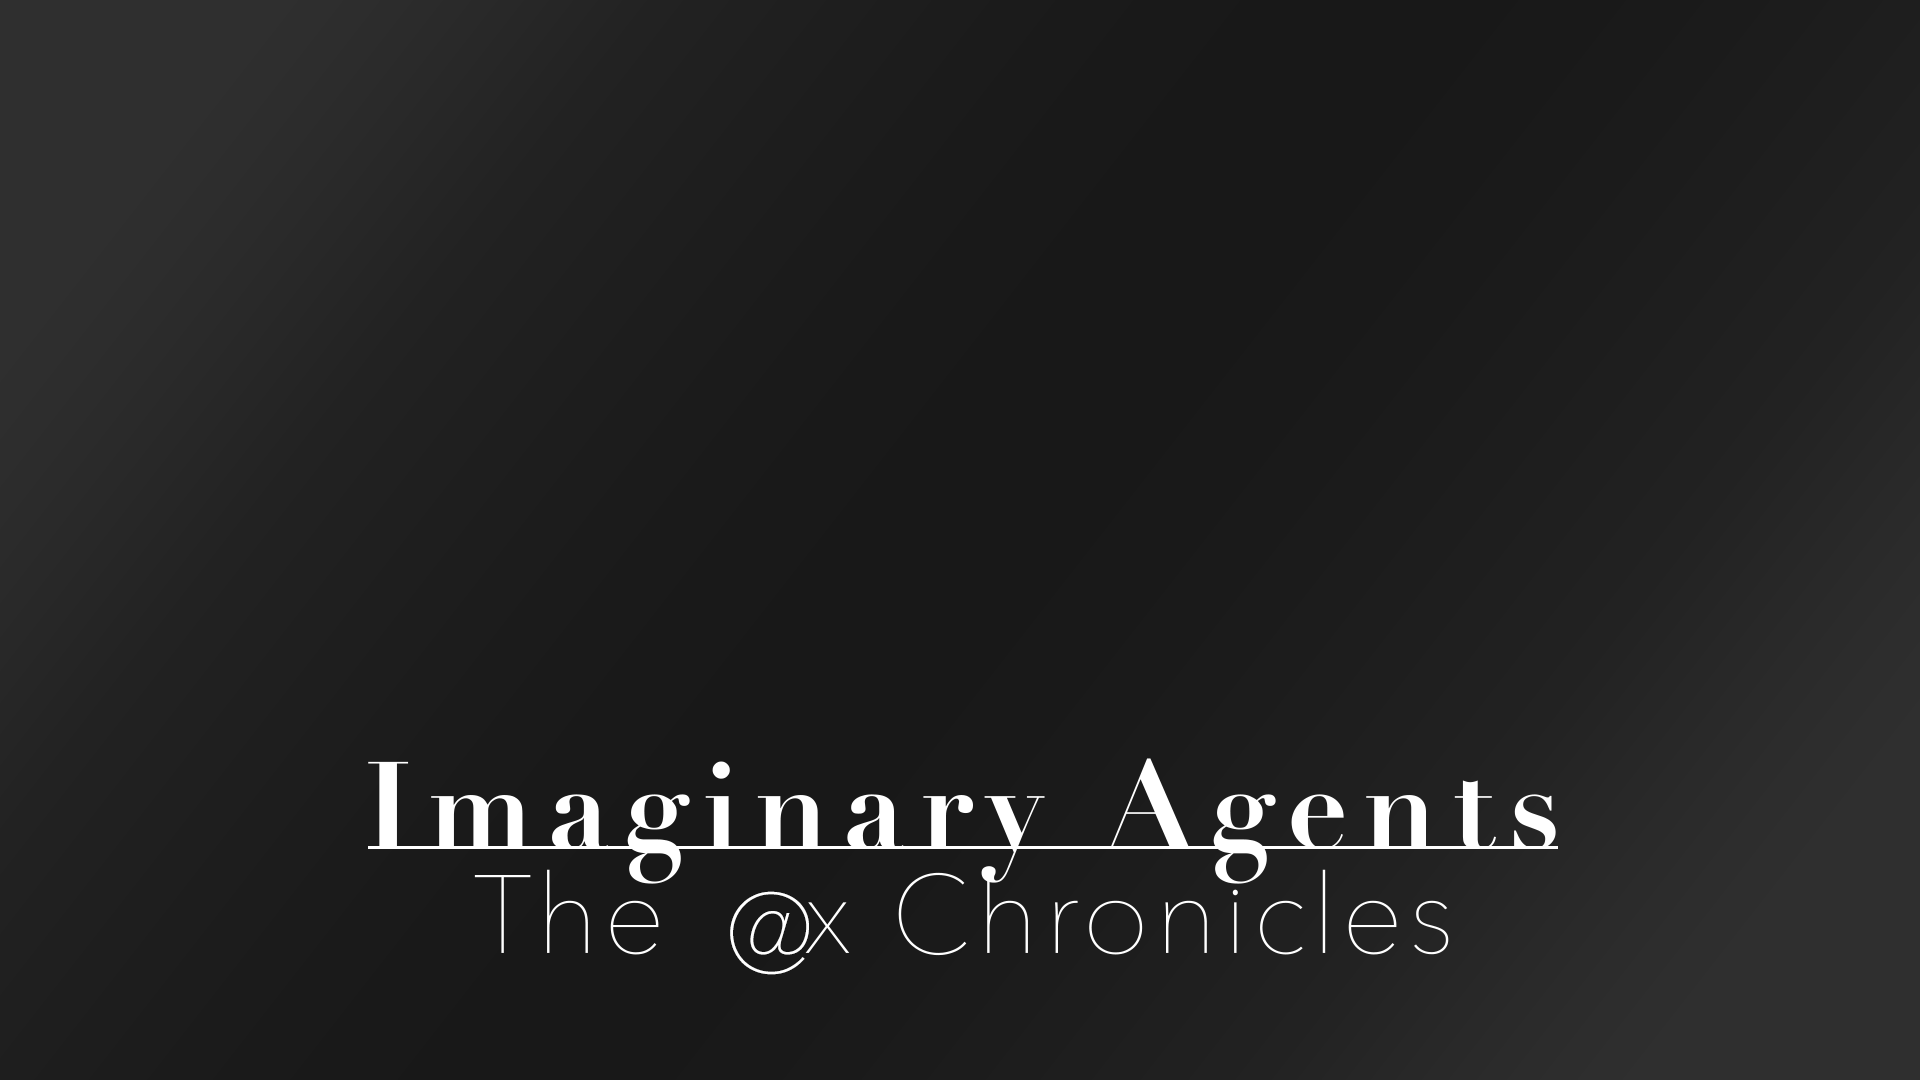 Imaginary Agents